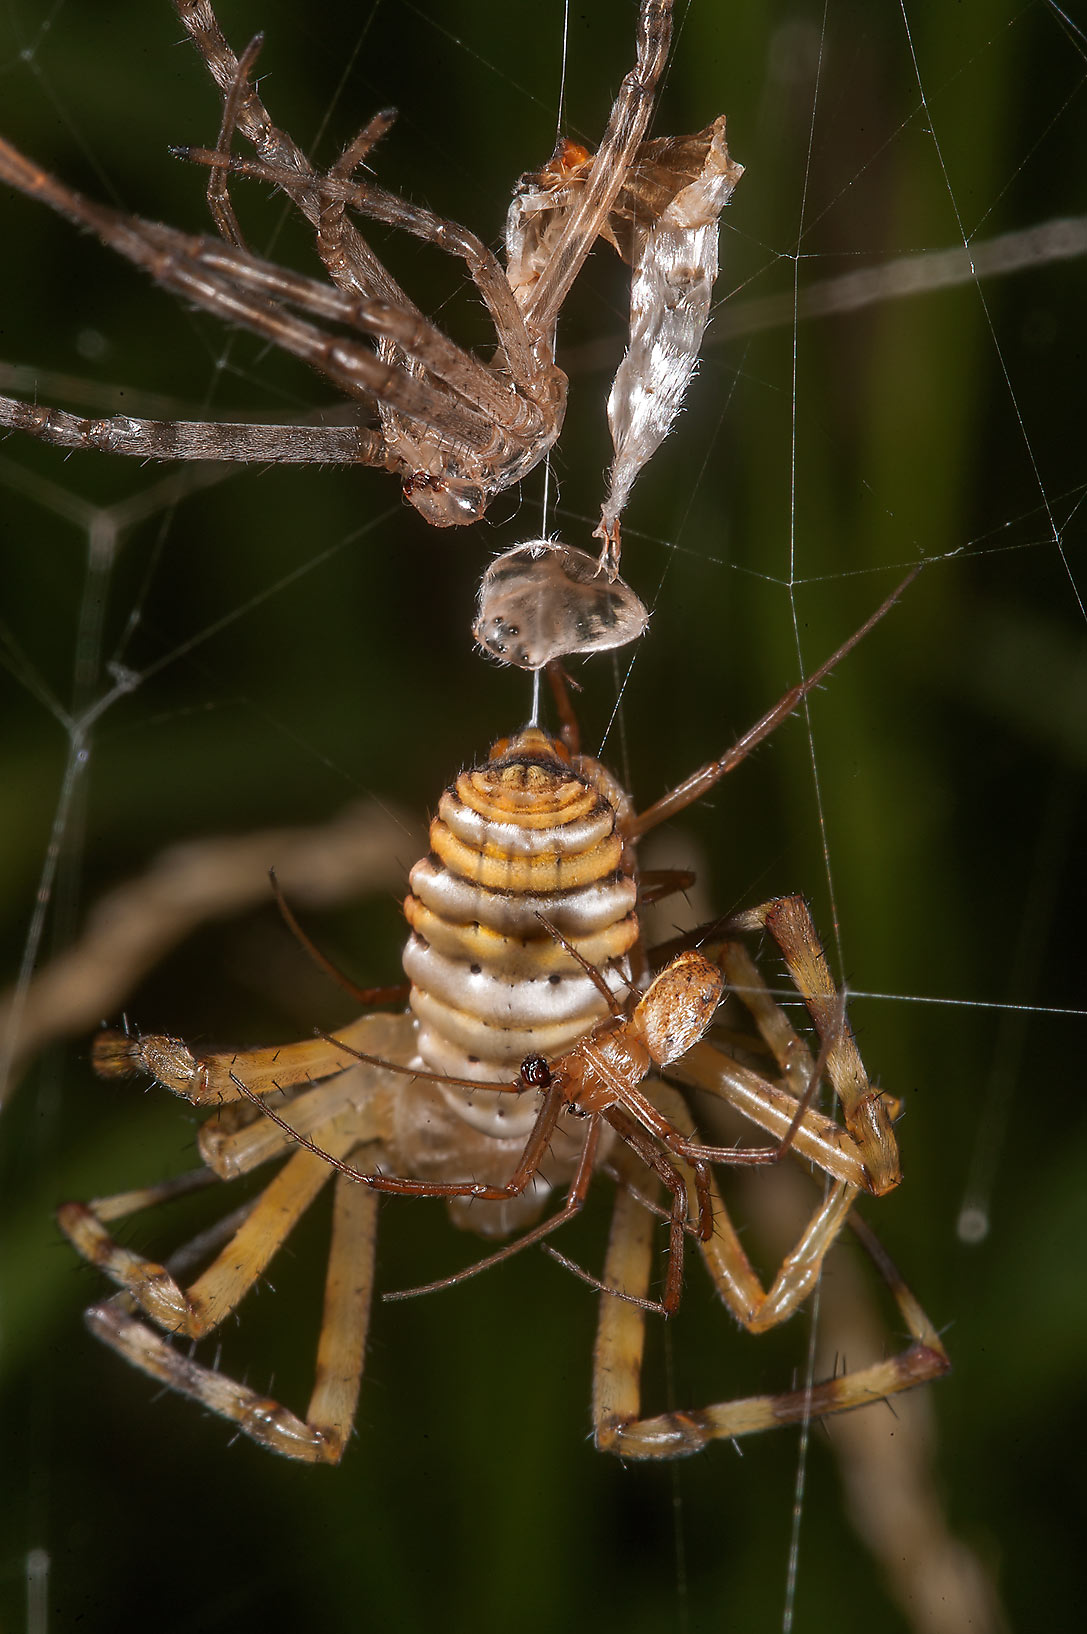 Mating yellow garden spiders (Argiope aurantia...in Irkhaya (Irkaya) Farms. Qatar